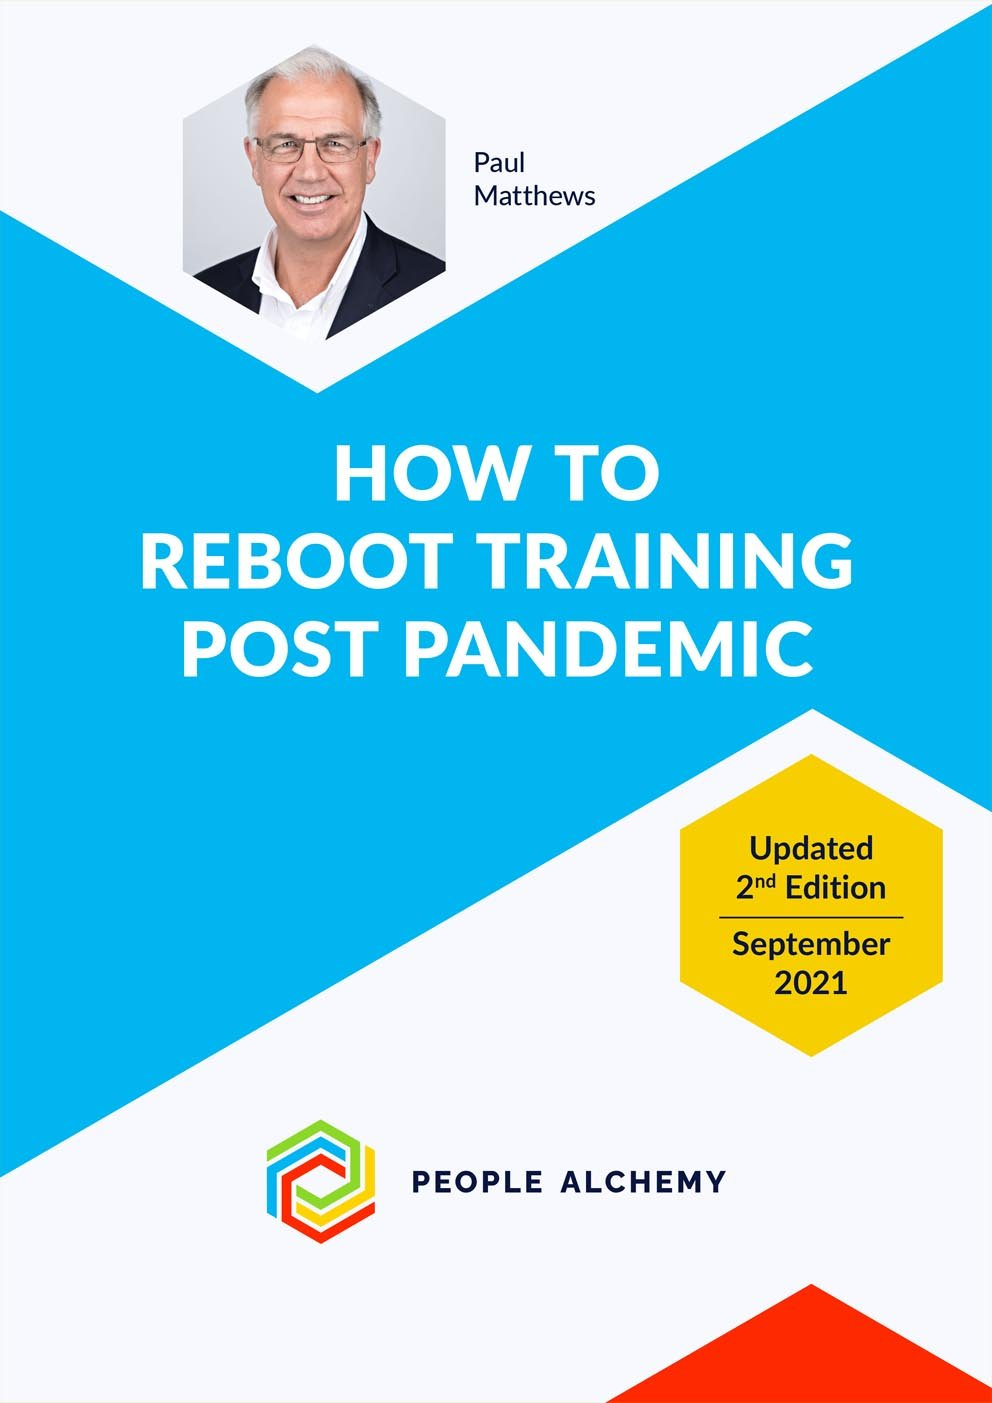 https://peoplealchemy.com/wp-content/uploads/2021/09/PA-How-to-Reboot-Training-2021-Edition-HR.jpg